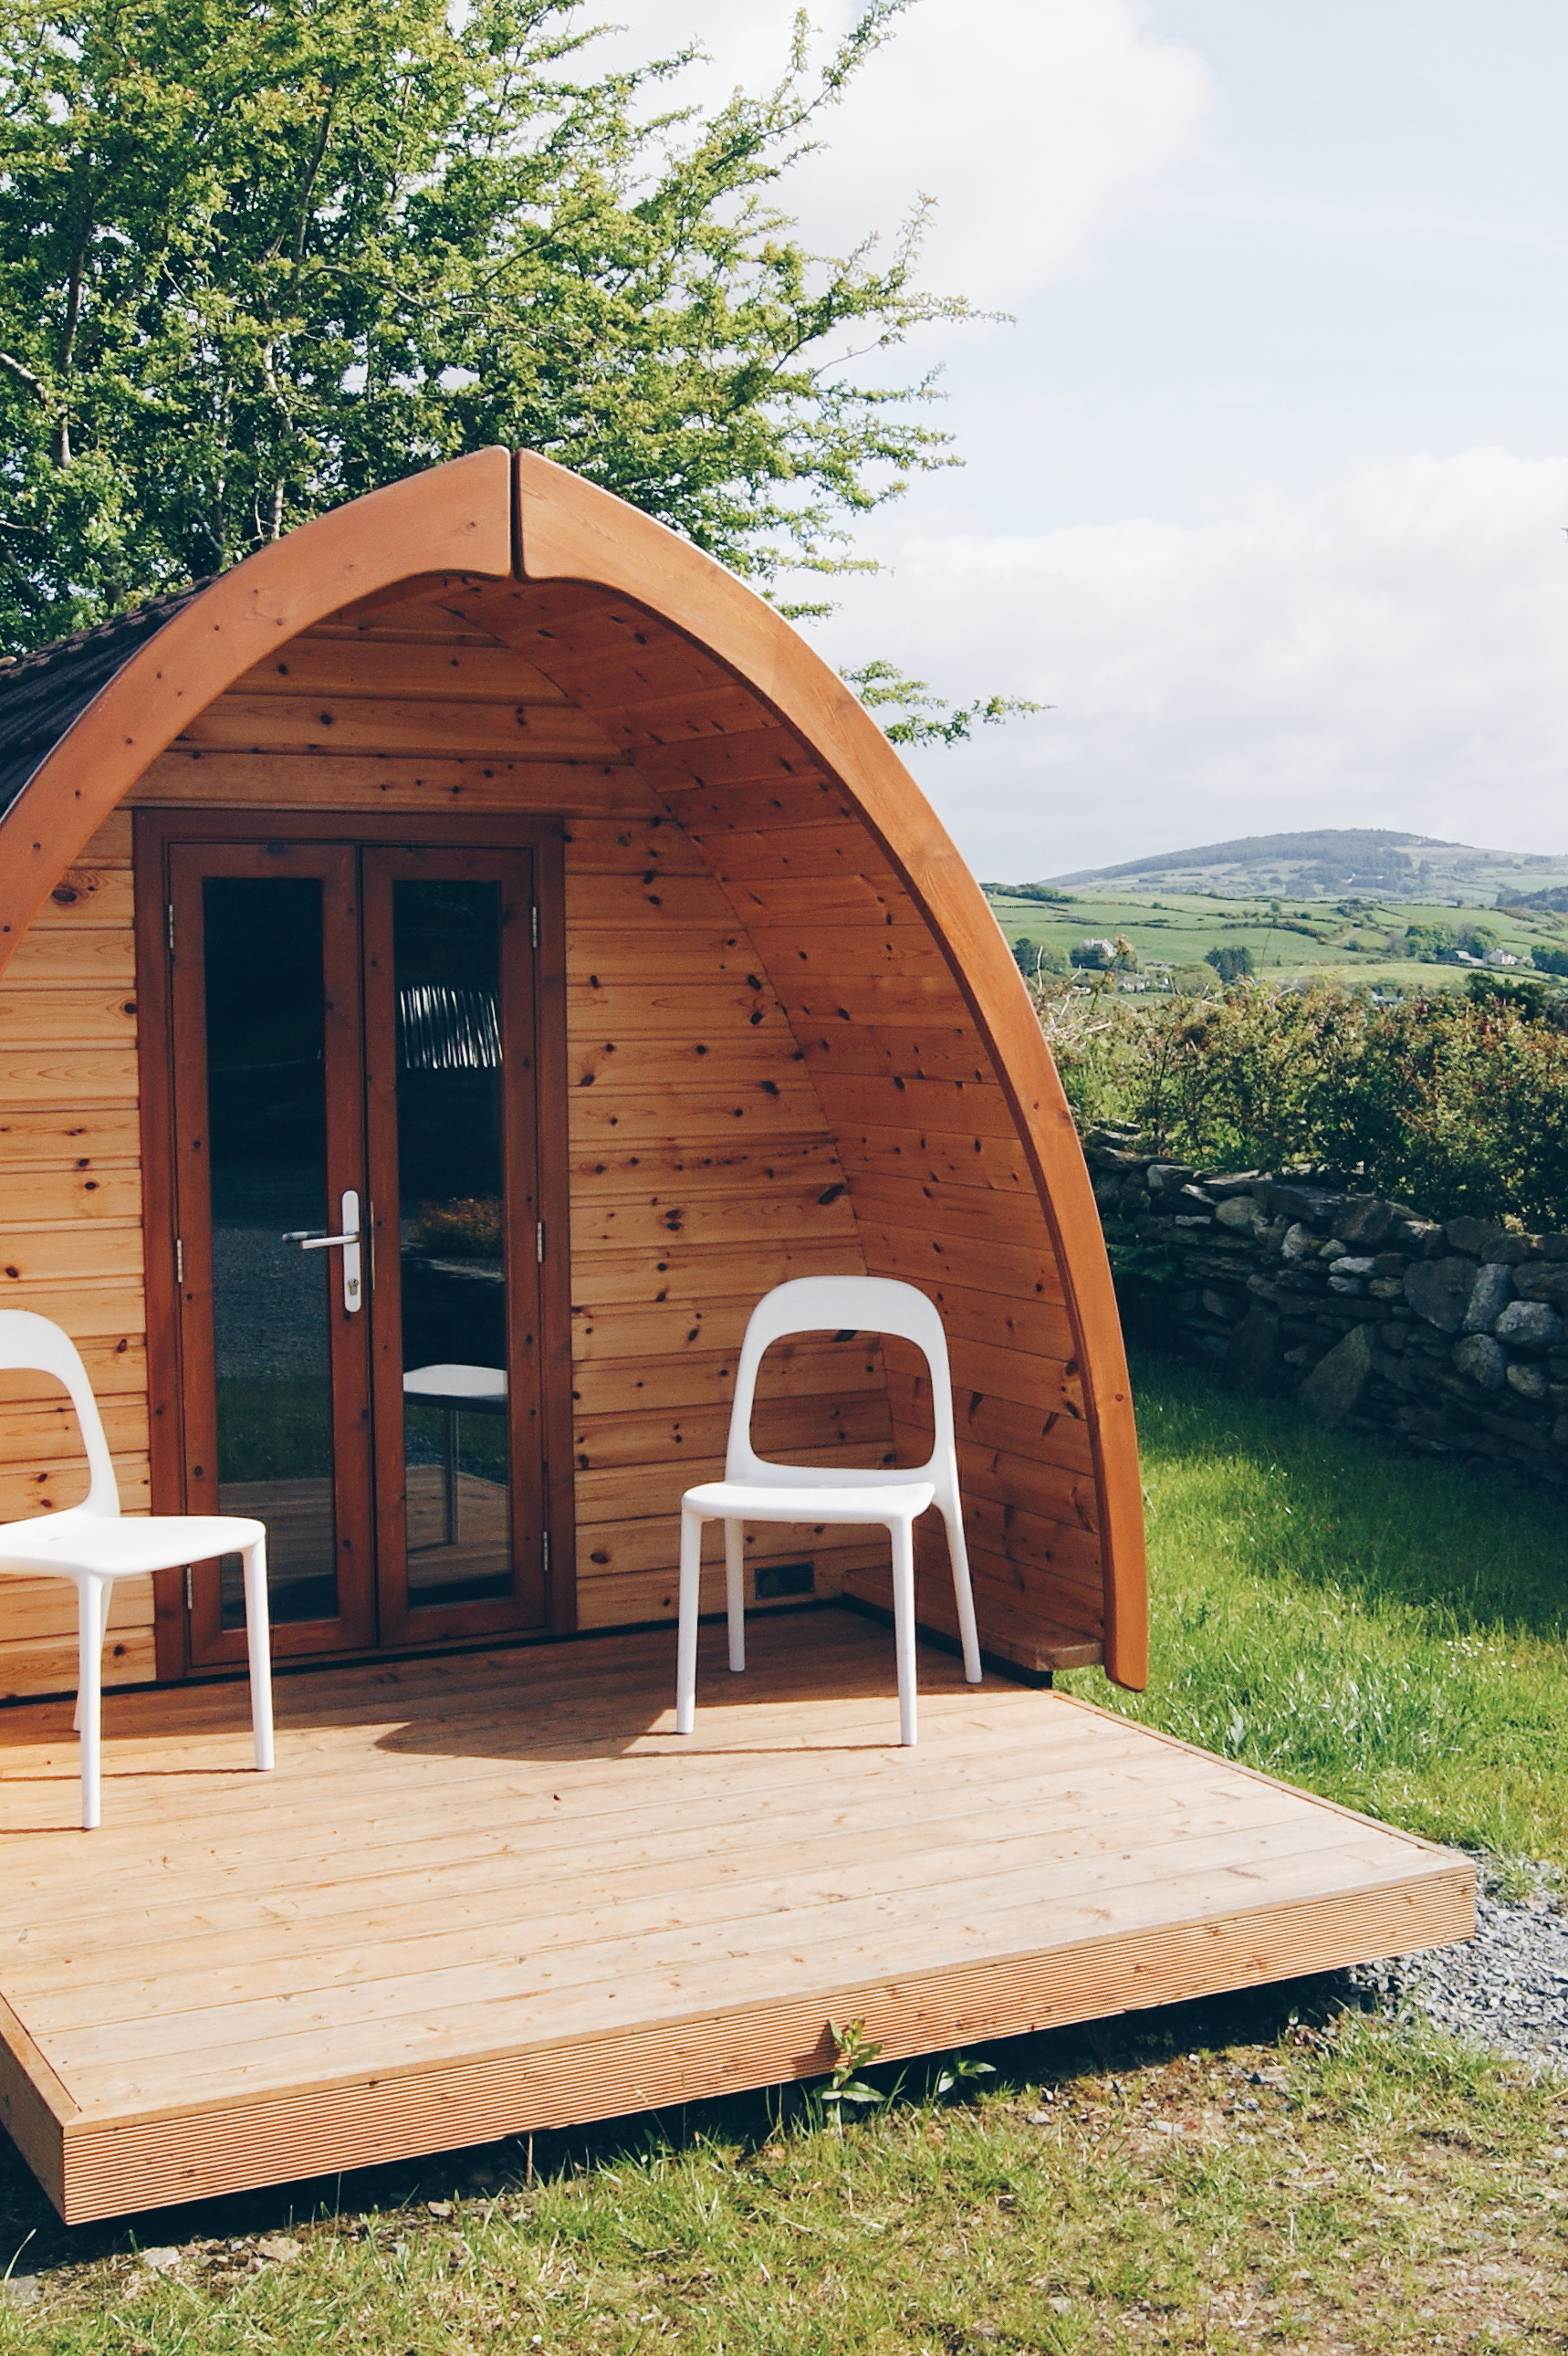 visit west cork glamping u0026 hiking at top of the rock gkm